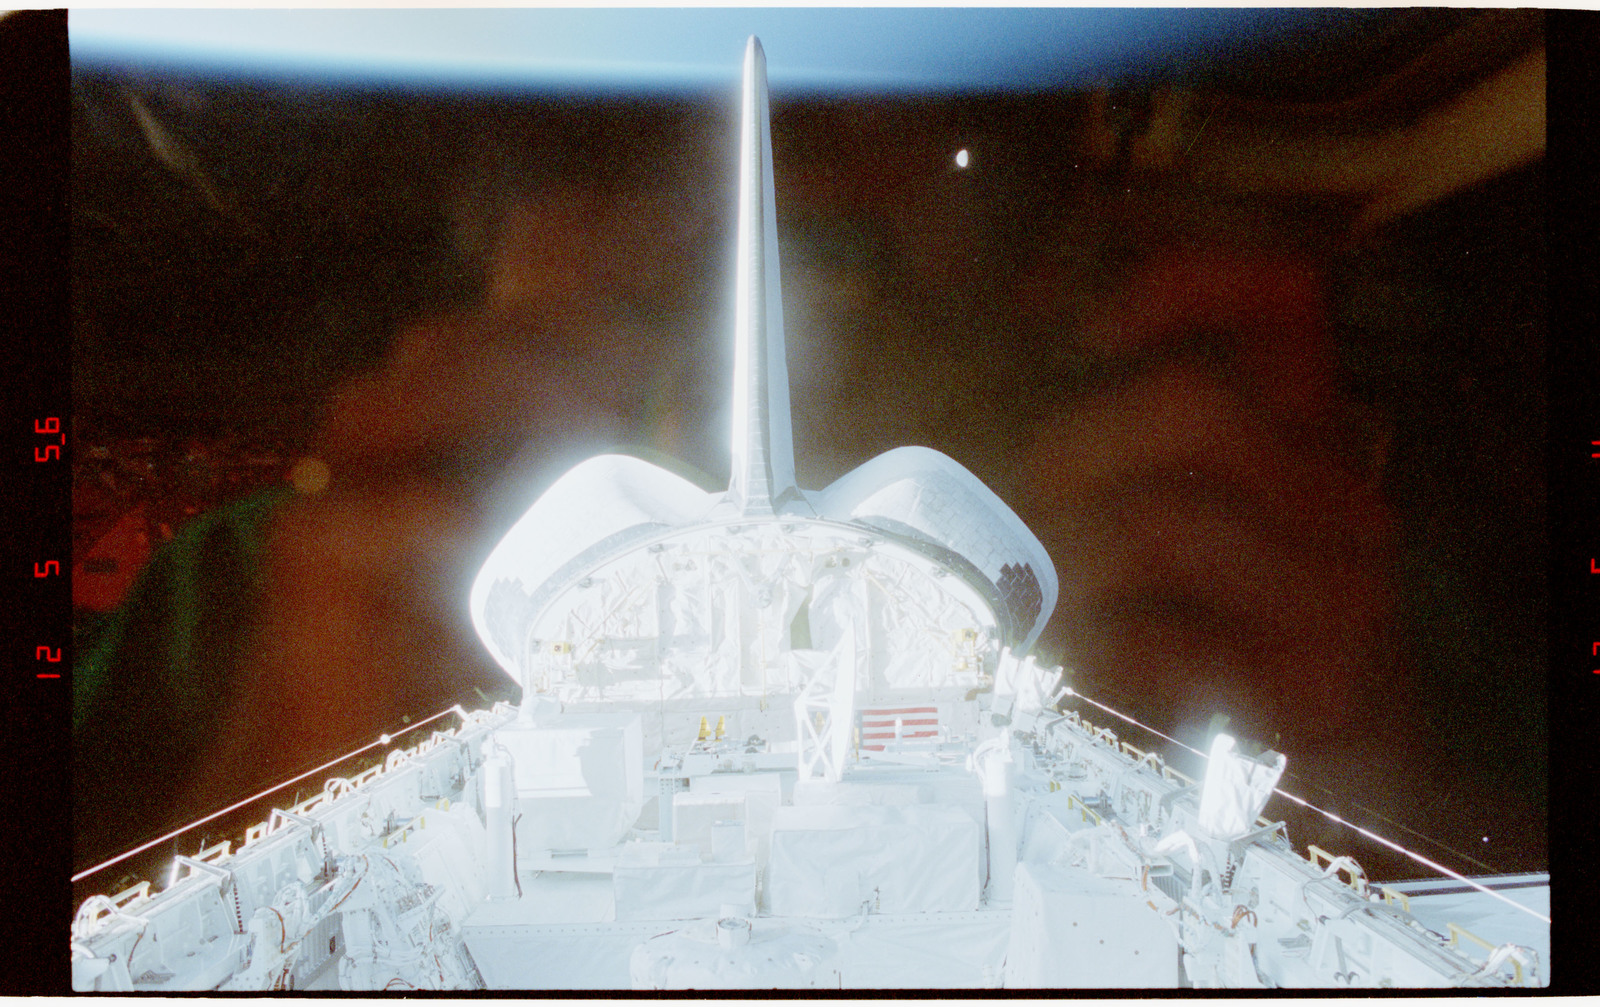 STS056-28-014 - STS-056 - Views of the payload bay, Earth limb with day/night terminator, and moon.